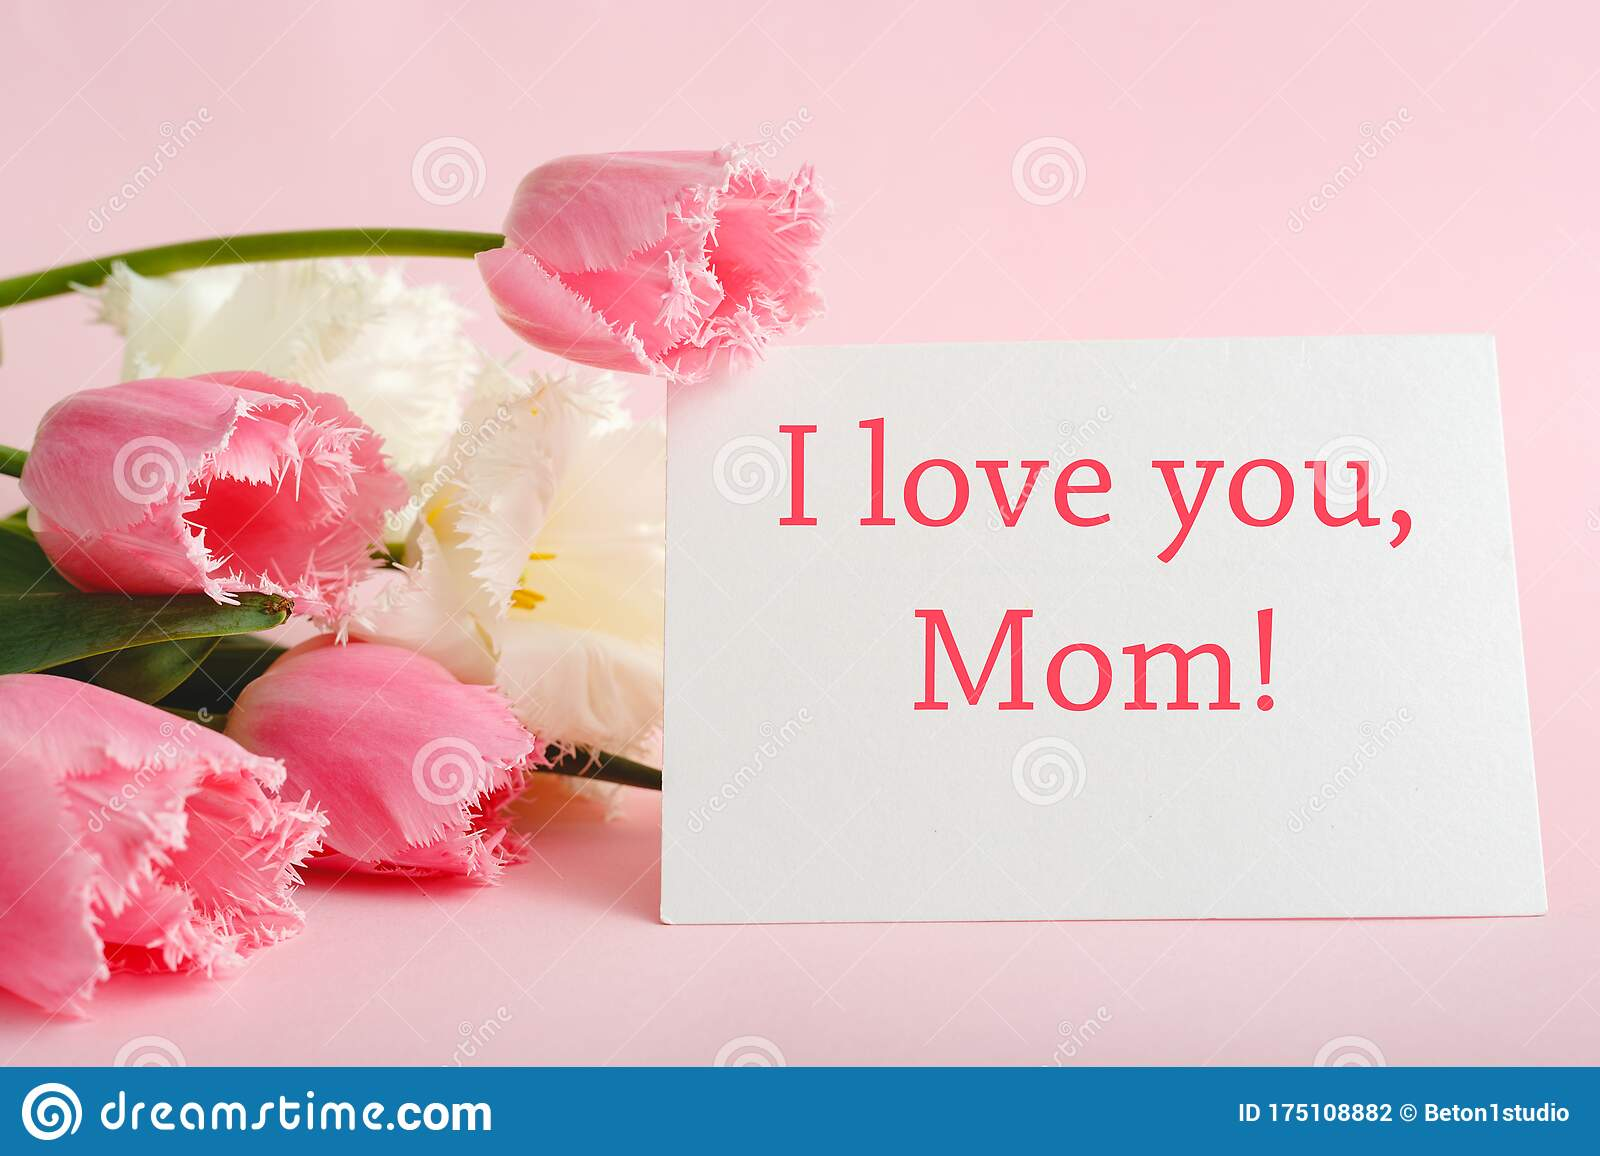 I Love You Mom Text On Gift Card In Flower Bouquet On Pink Background Greeting Card For Mom Happy Mothers Day Flower Delivery Stock Photo Image Of Love Congratulations 175108882